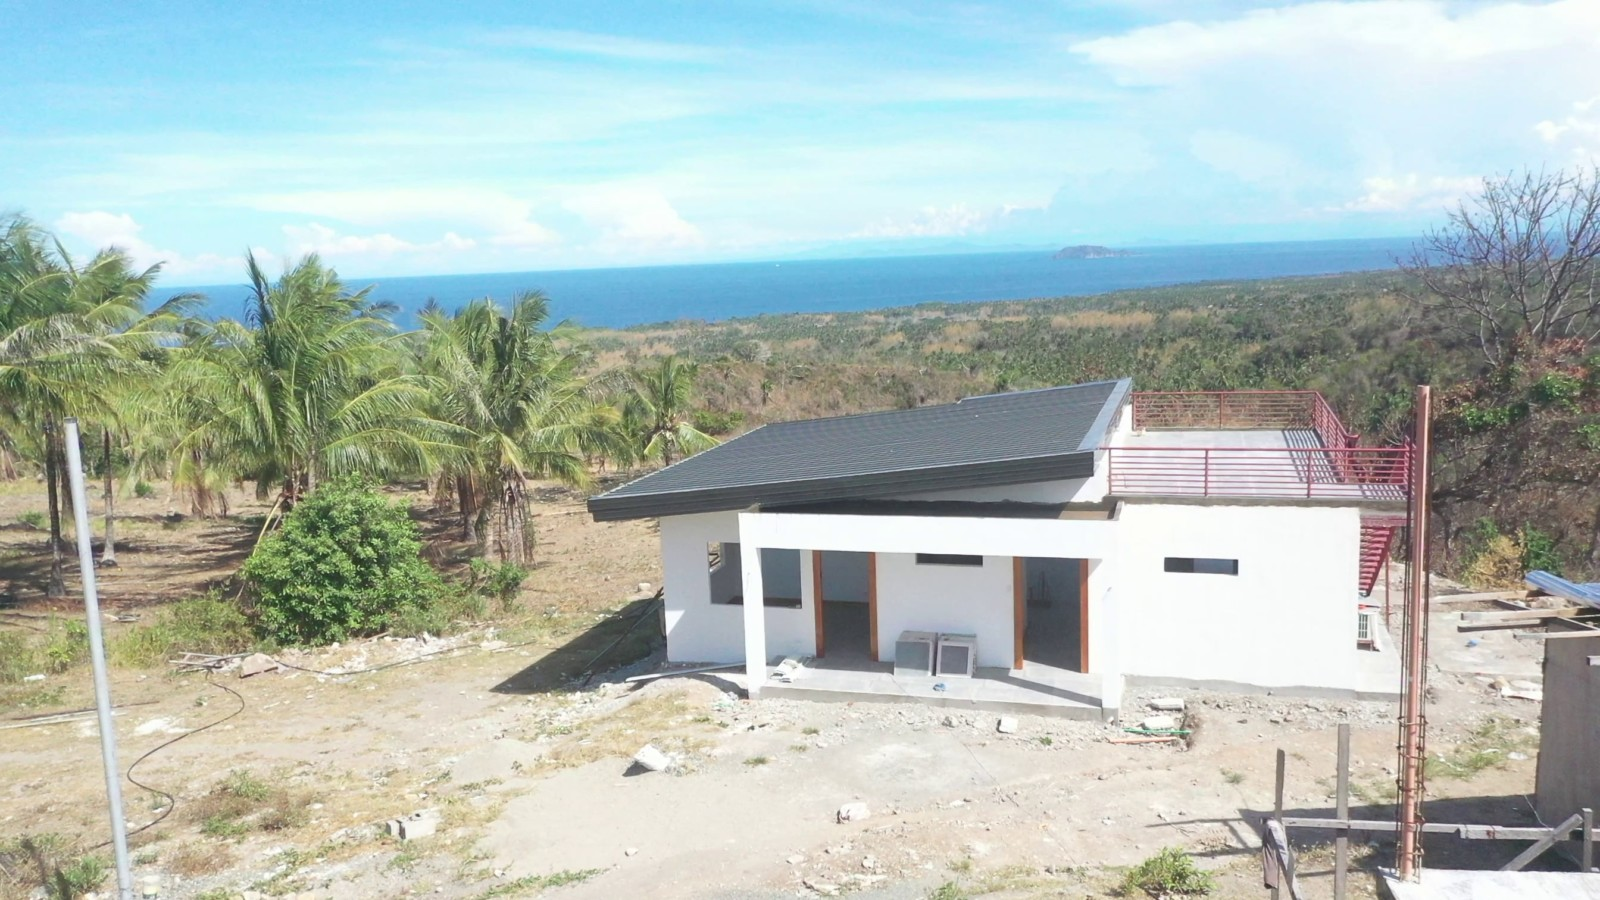 OCEAN VIEW HOUSE AND LOT FOR SALE IN DAUIN